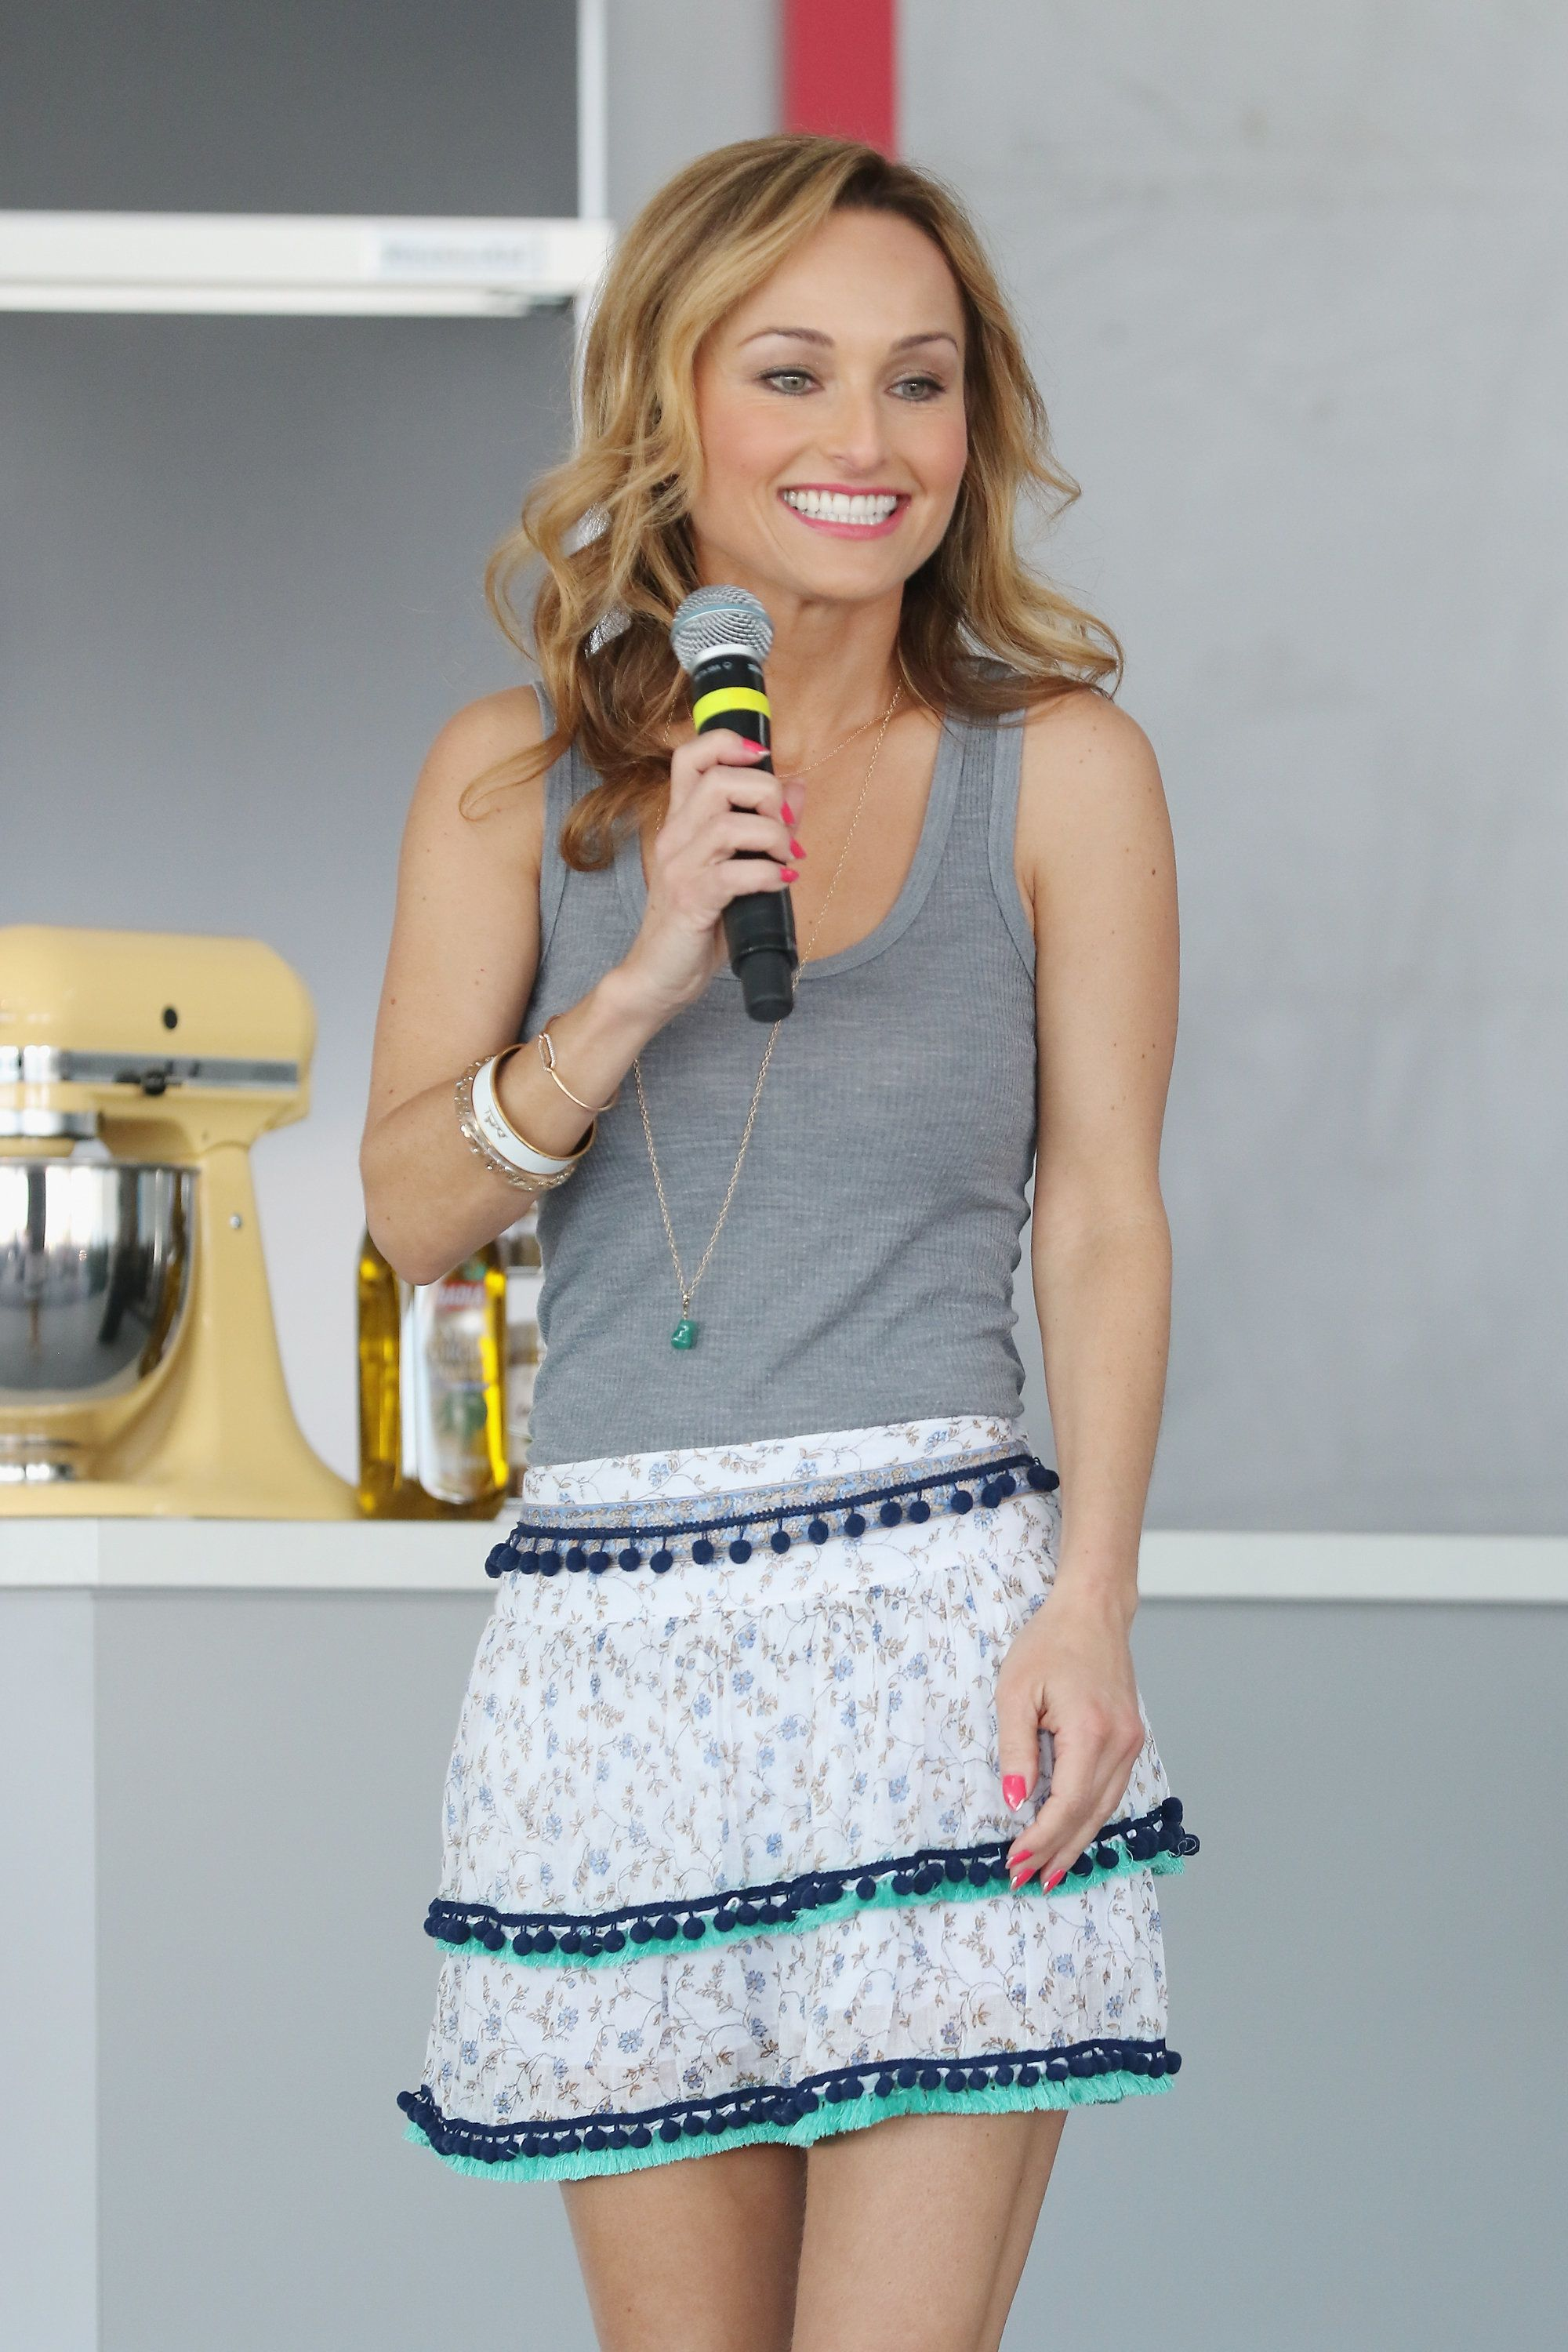 MIAMI BEACH, FL - FEBRUARY 27:  Chef Giada De Laurentiis speaks during the Goya Foods Grand Tasting Village Featuring MasterCard Grand Tasting Tents & KitchenAid® Culinary Demonstrations during 2016 Food Network & Cooking Channel South Beach Wine & Food Festival Presented By FOOD & WINE at Grand Tasting Village on February 27, 2016 in Miami Beach, Florida.  (Photo by Alexander Tamargo/Getty Images)